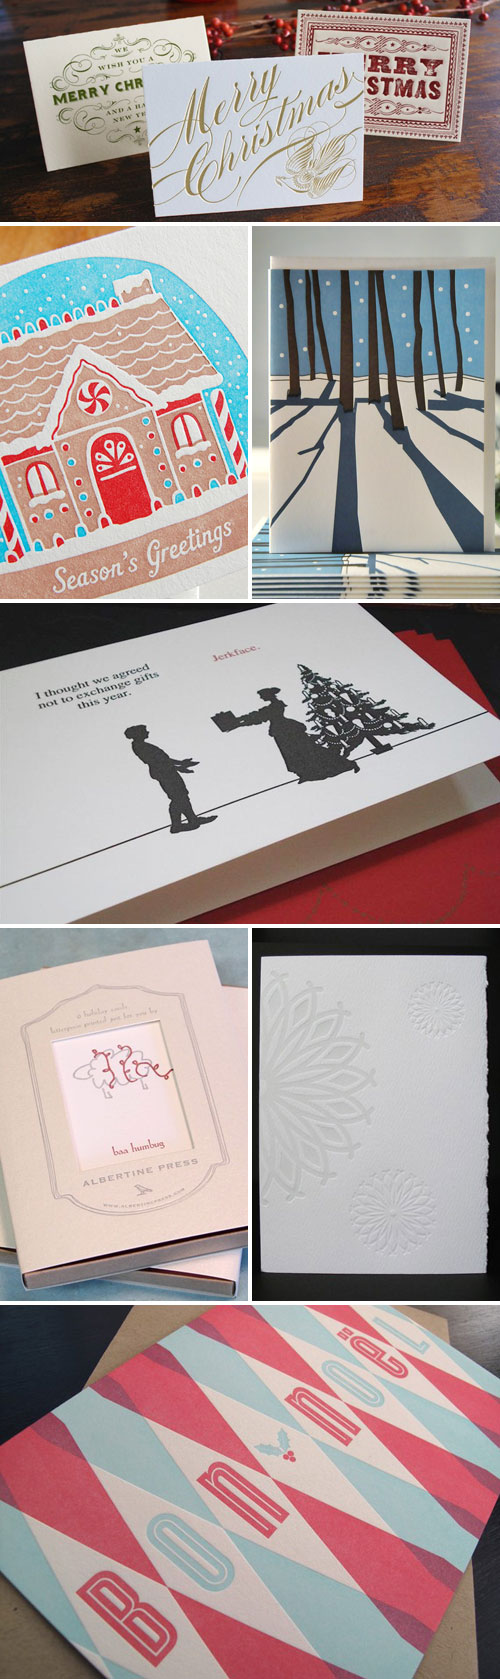 Letterpress Christmas Holiday Cards